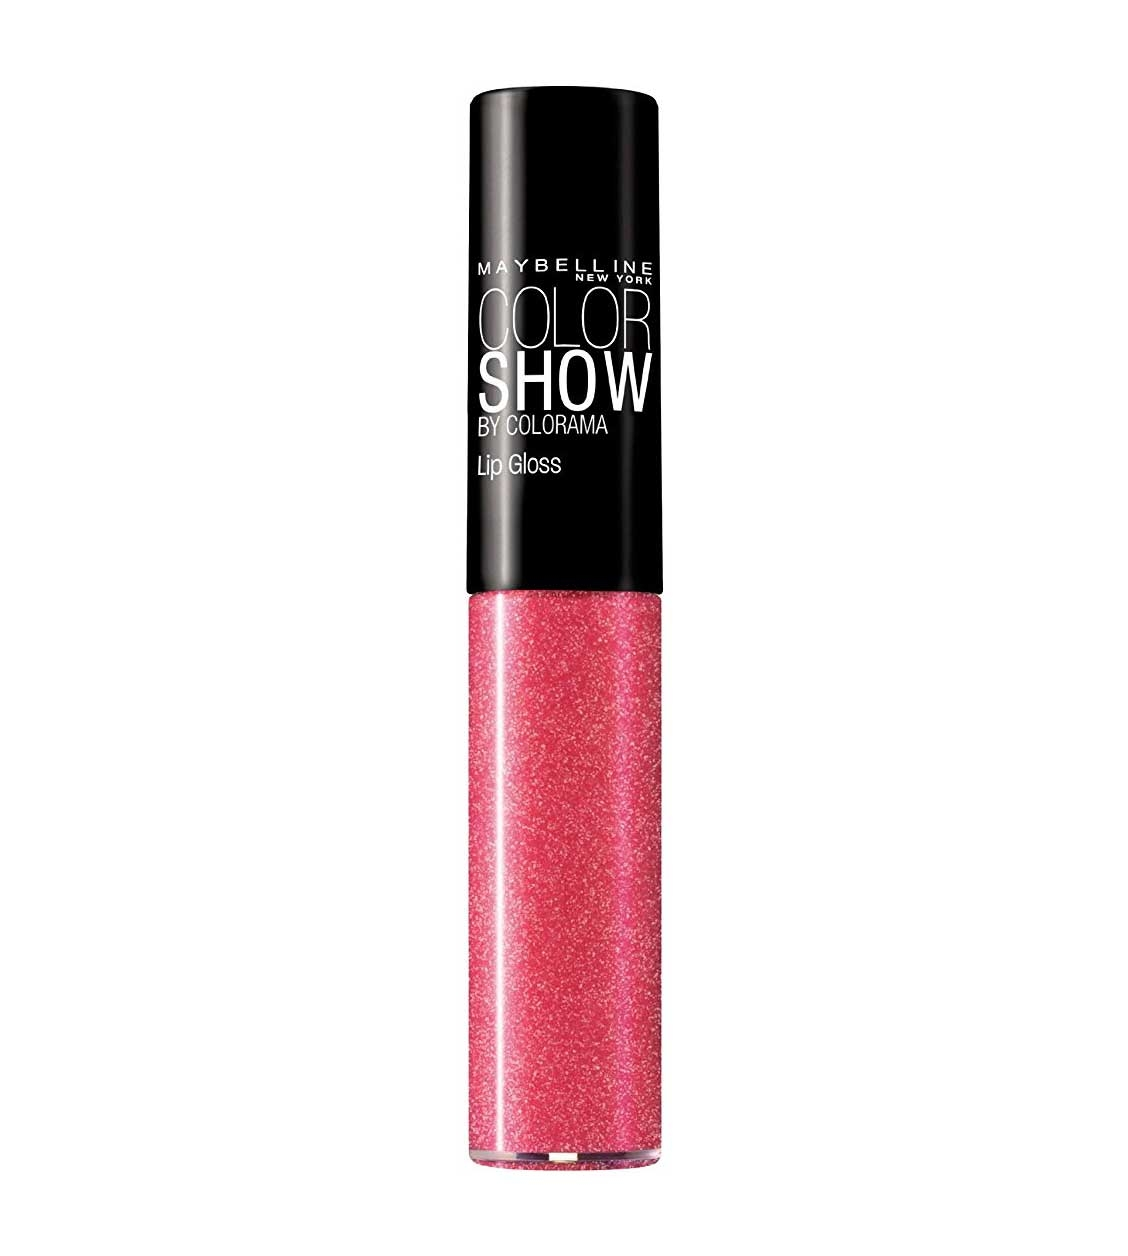 Lipgloss Maybelline Color Show by Colorama - 273